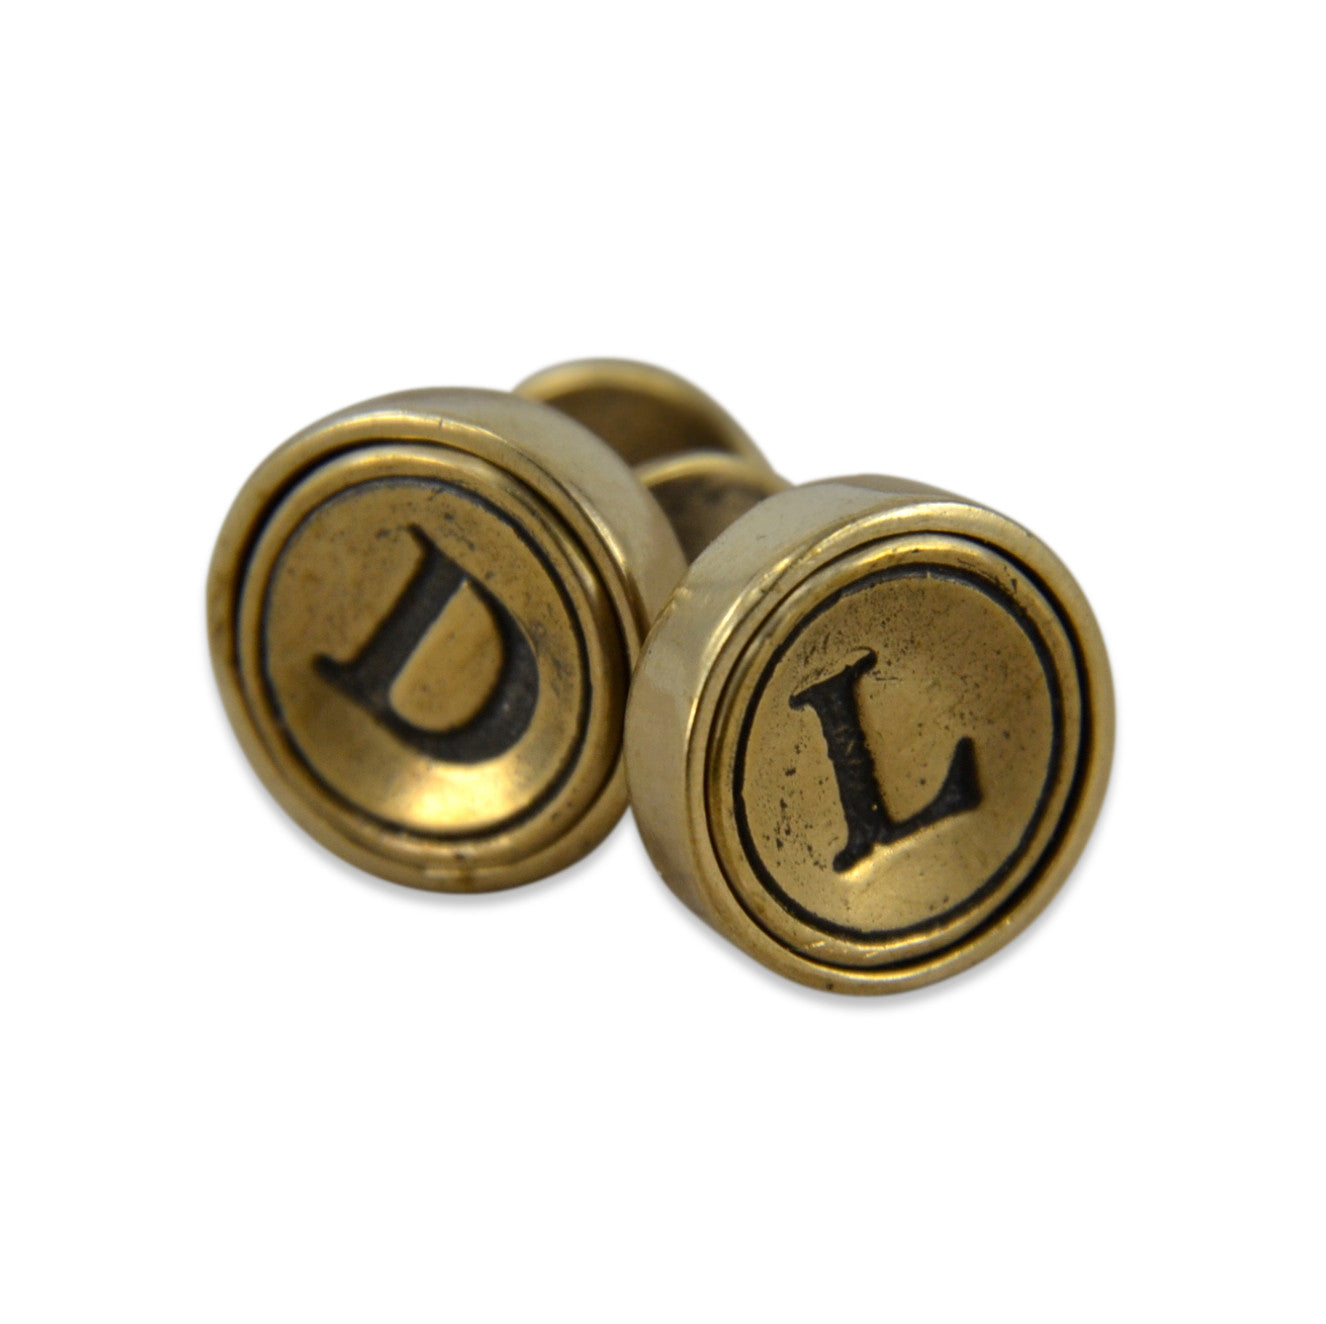 Personalized Initial Letter Cuff Links - Gwen Delicious Jewelry Designs